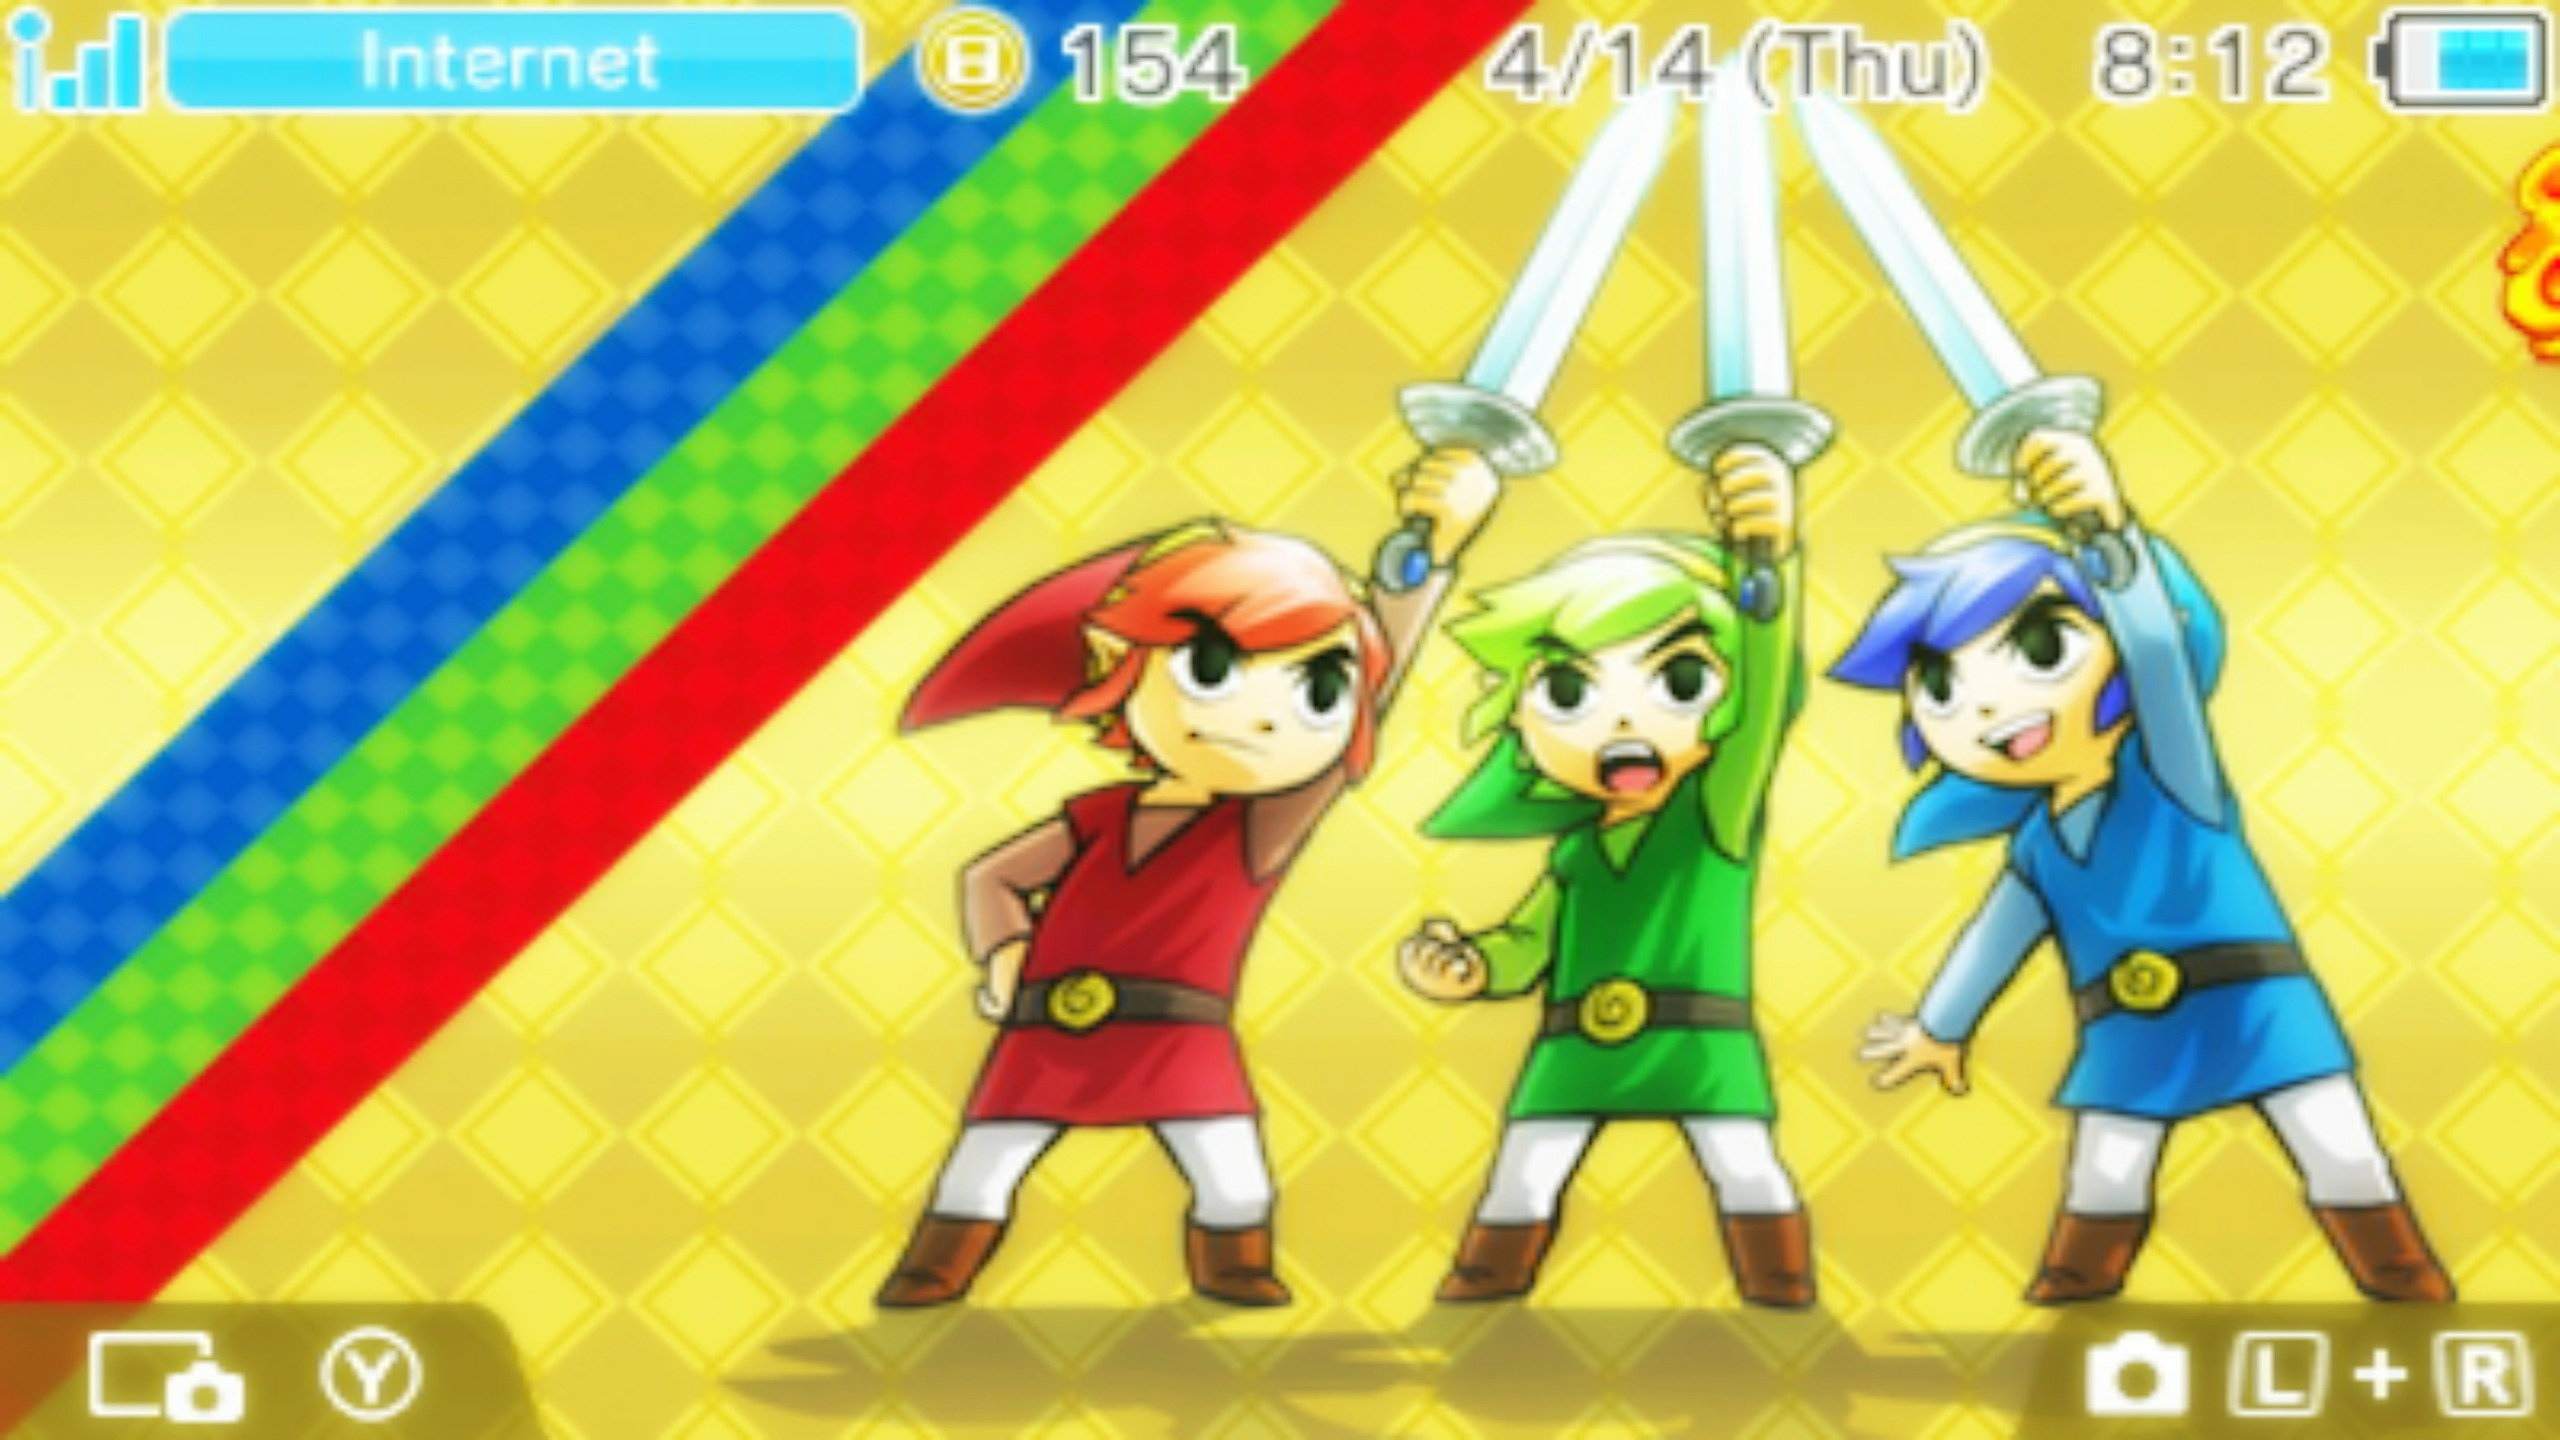 Res: 2560x1440, ... ObsessedGamerGal86 Triforce Heroes 3DS Wallpaper #3 by  ObsessedGamerGal86